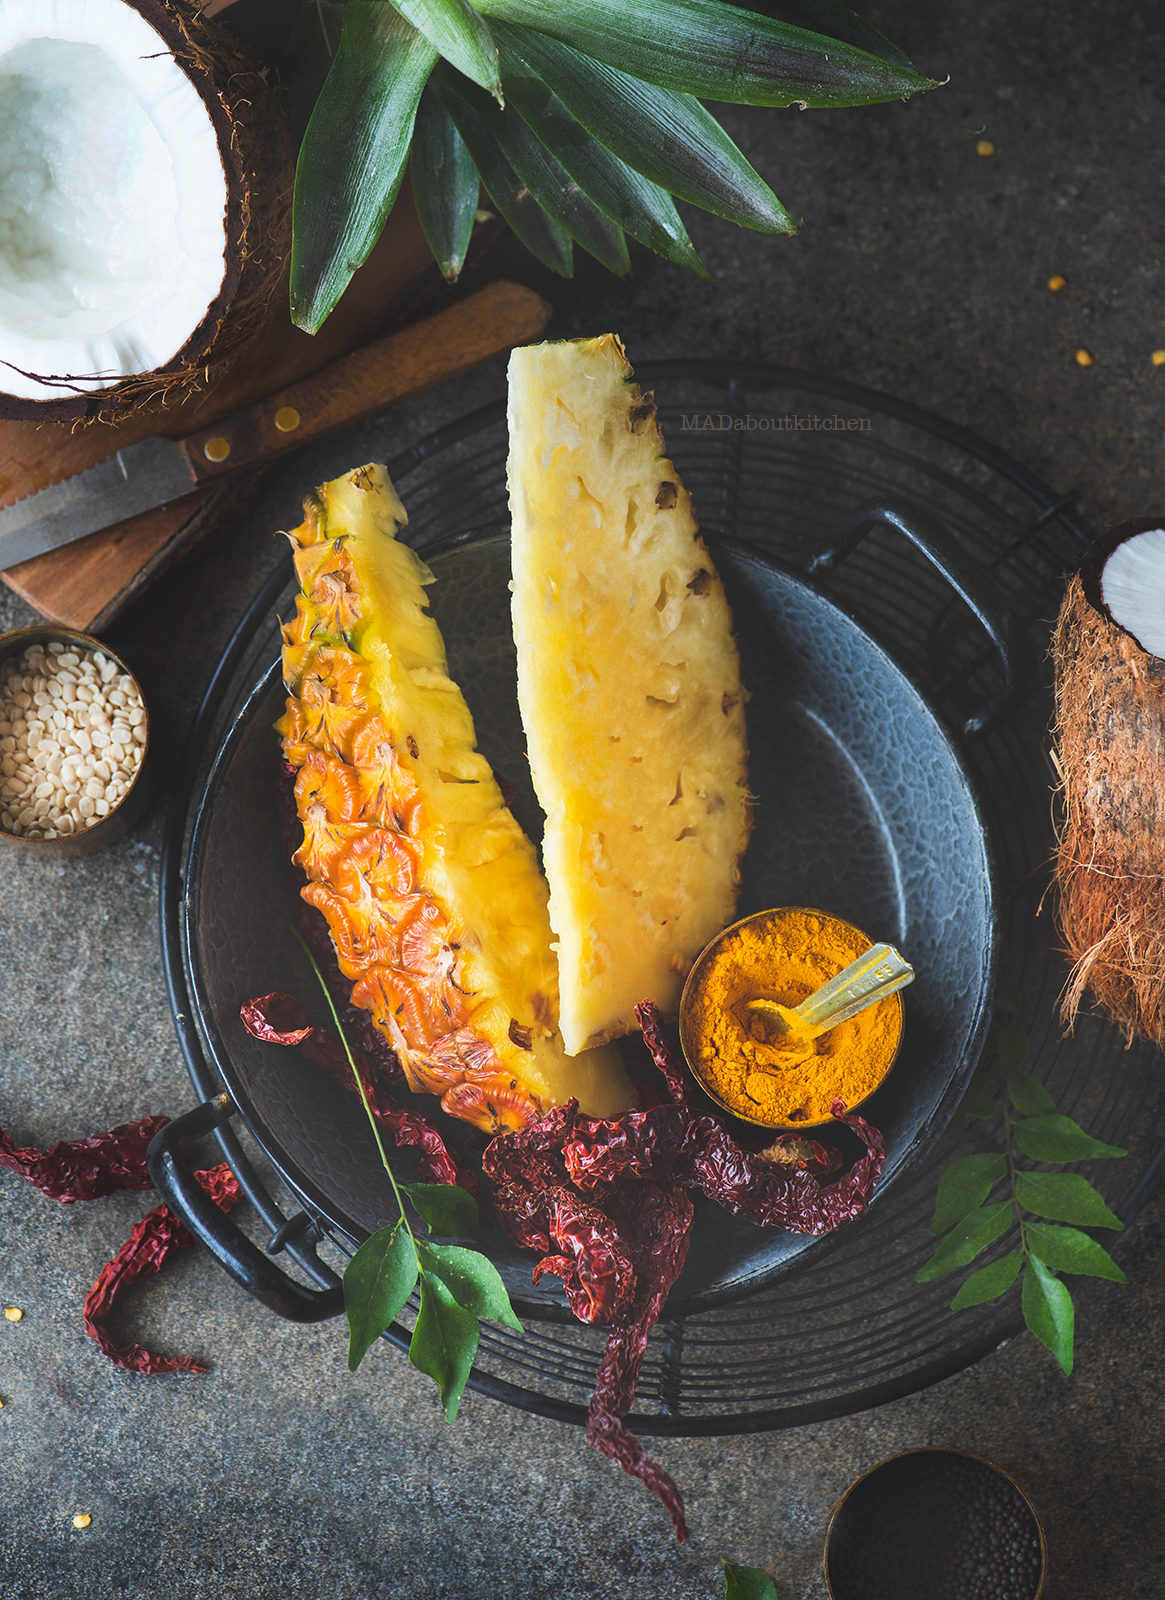 Anaanaas gojju, Pineapple curry is a speciality from Karnataka made using Pineapple and is a spicy, sweet curry had best with steamed rice.